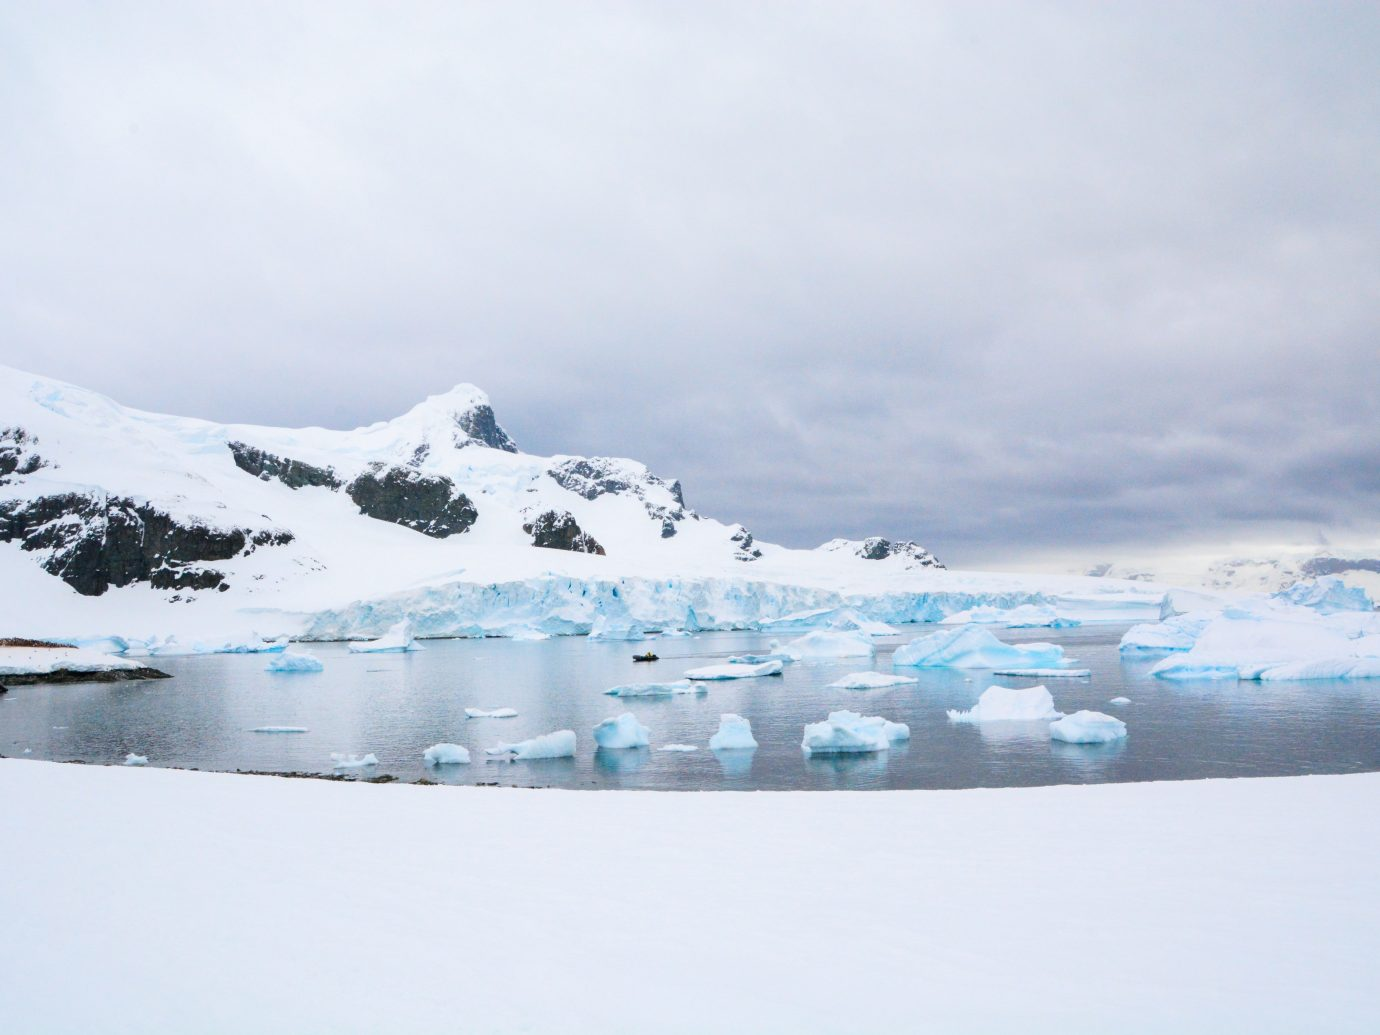 Cuverville Island icebergs